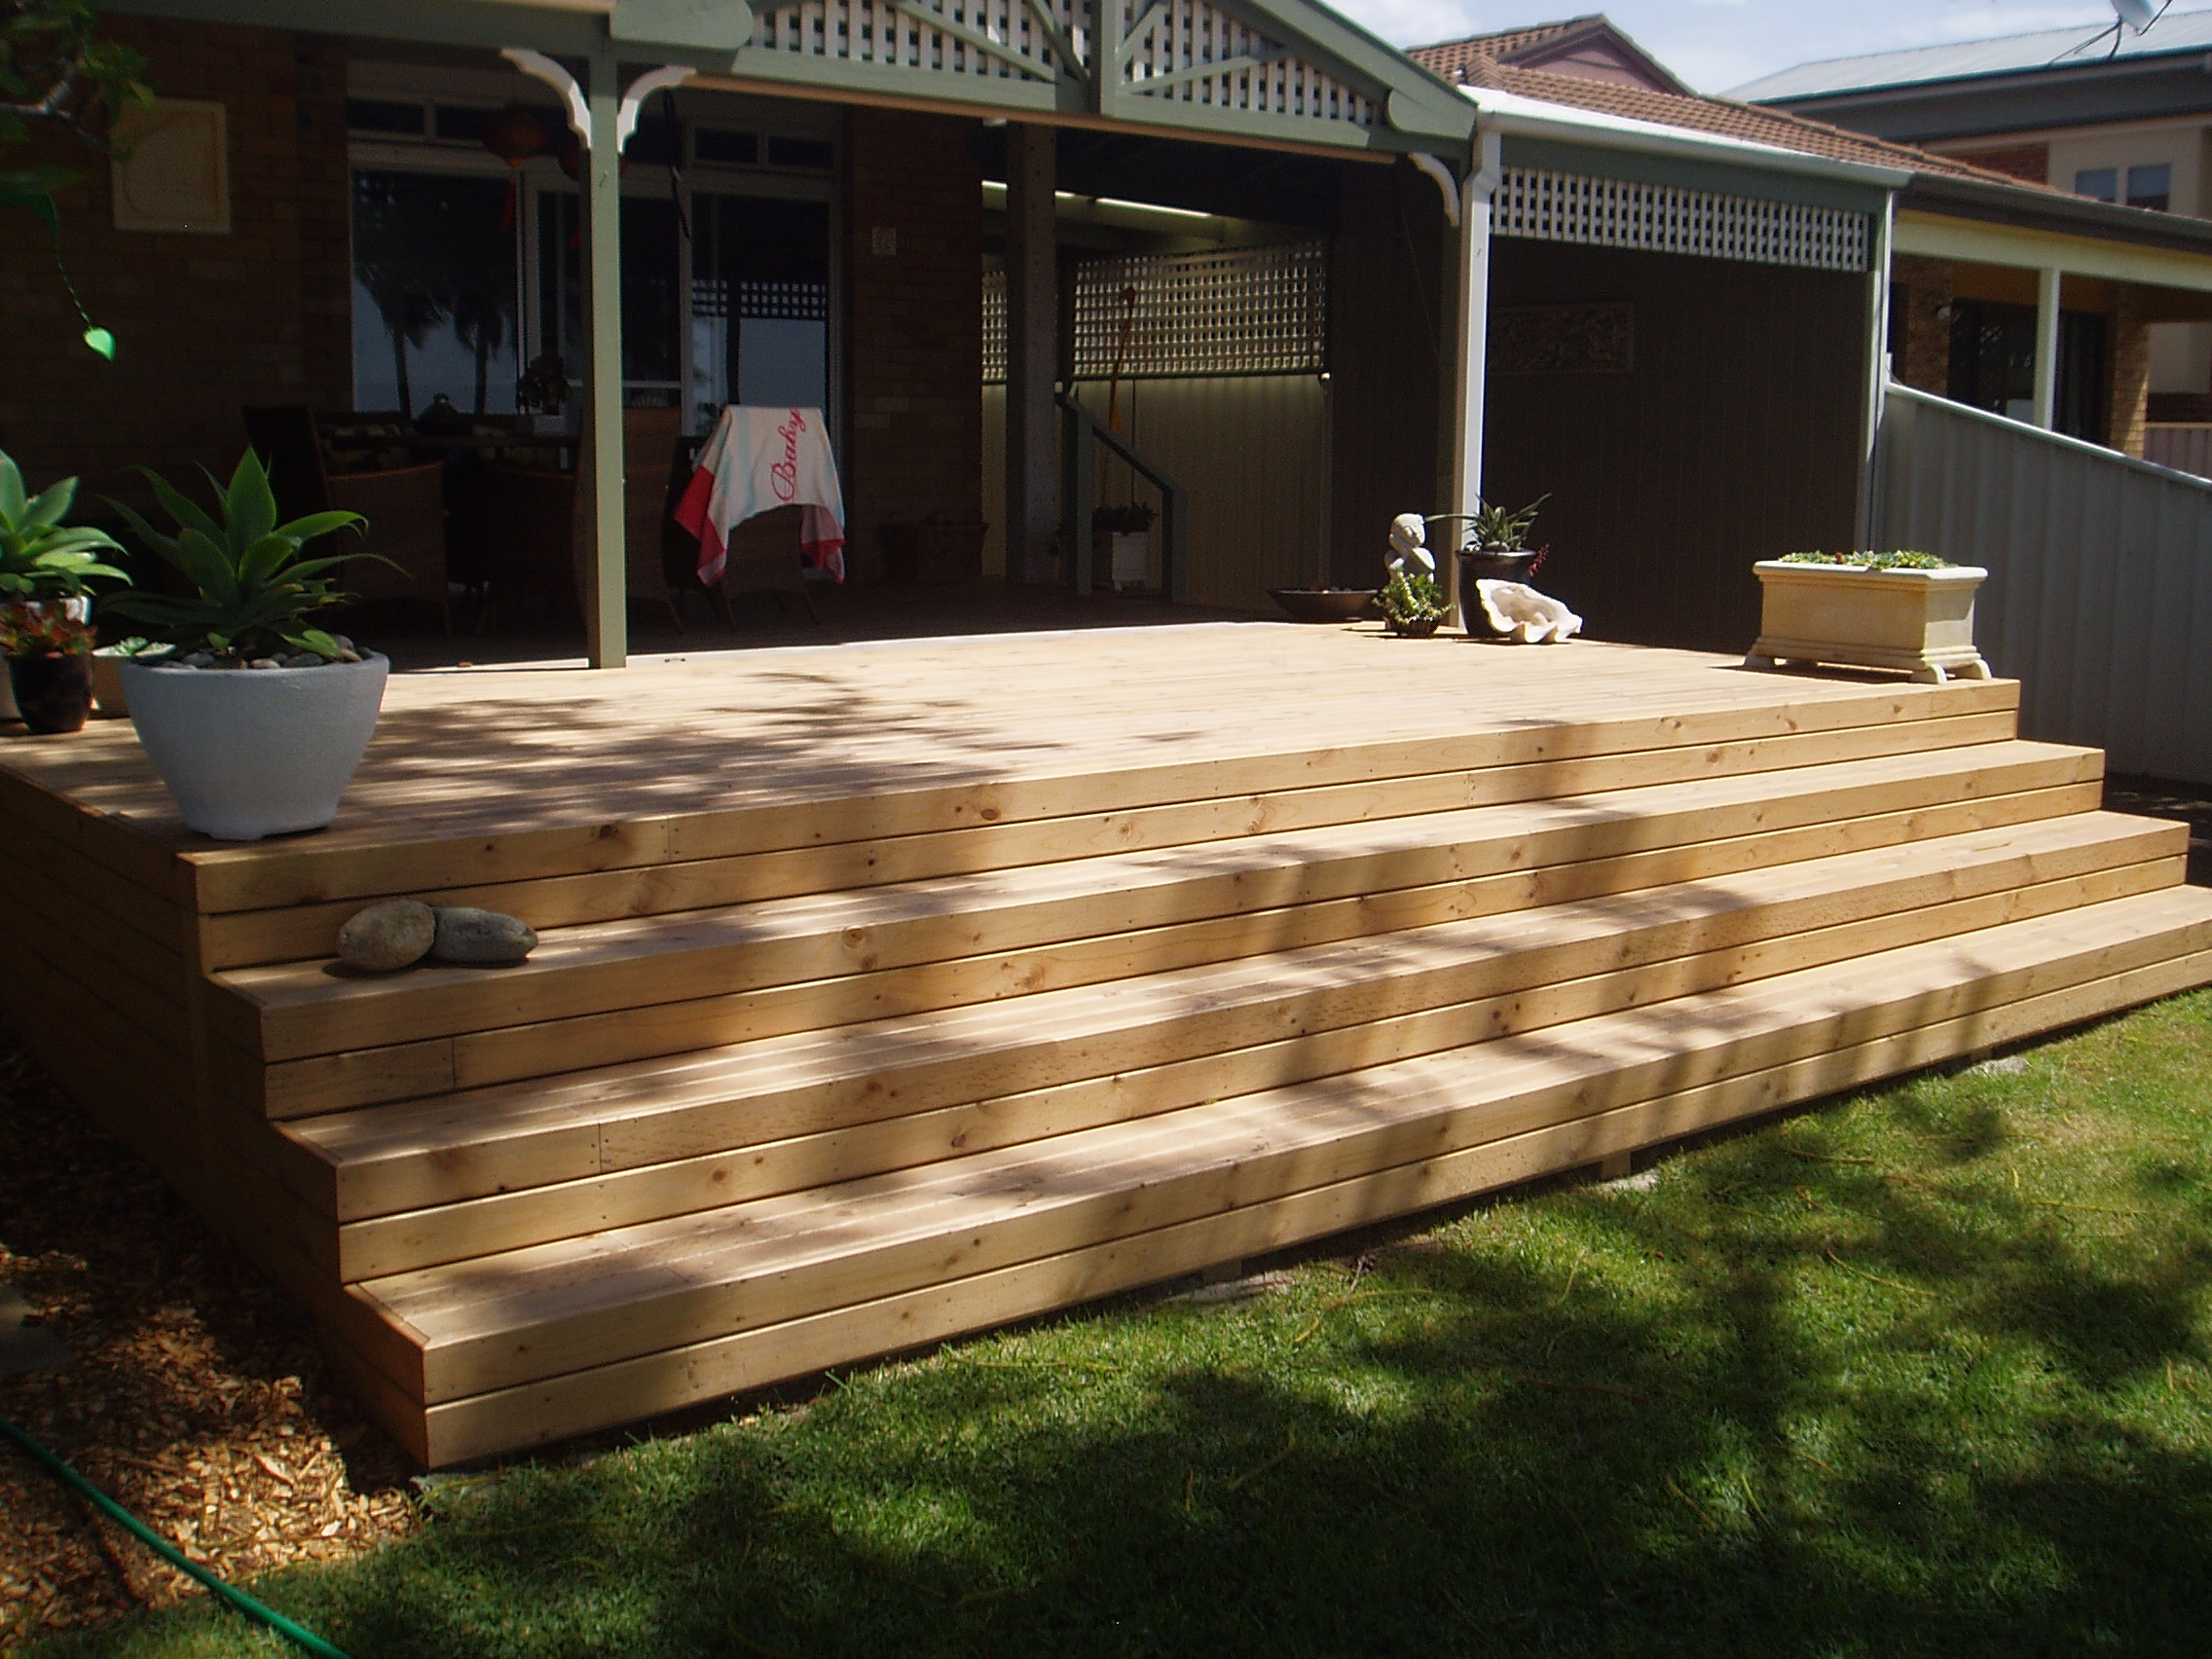 Timber Decking Materials Of Hardwood And Treated Pine Steps Branson Building Material